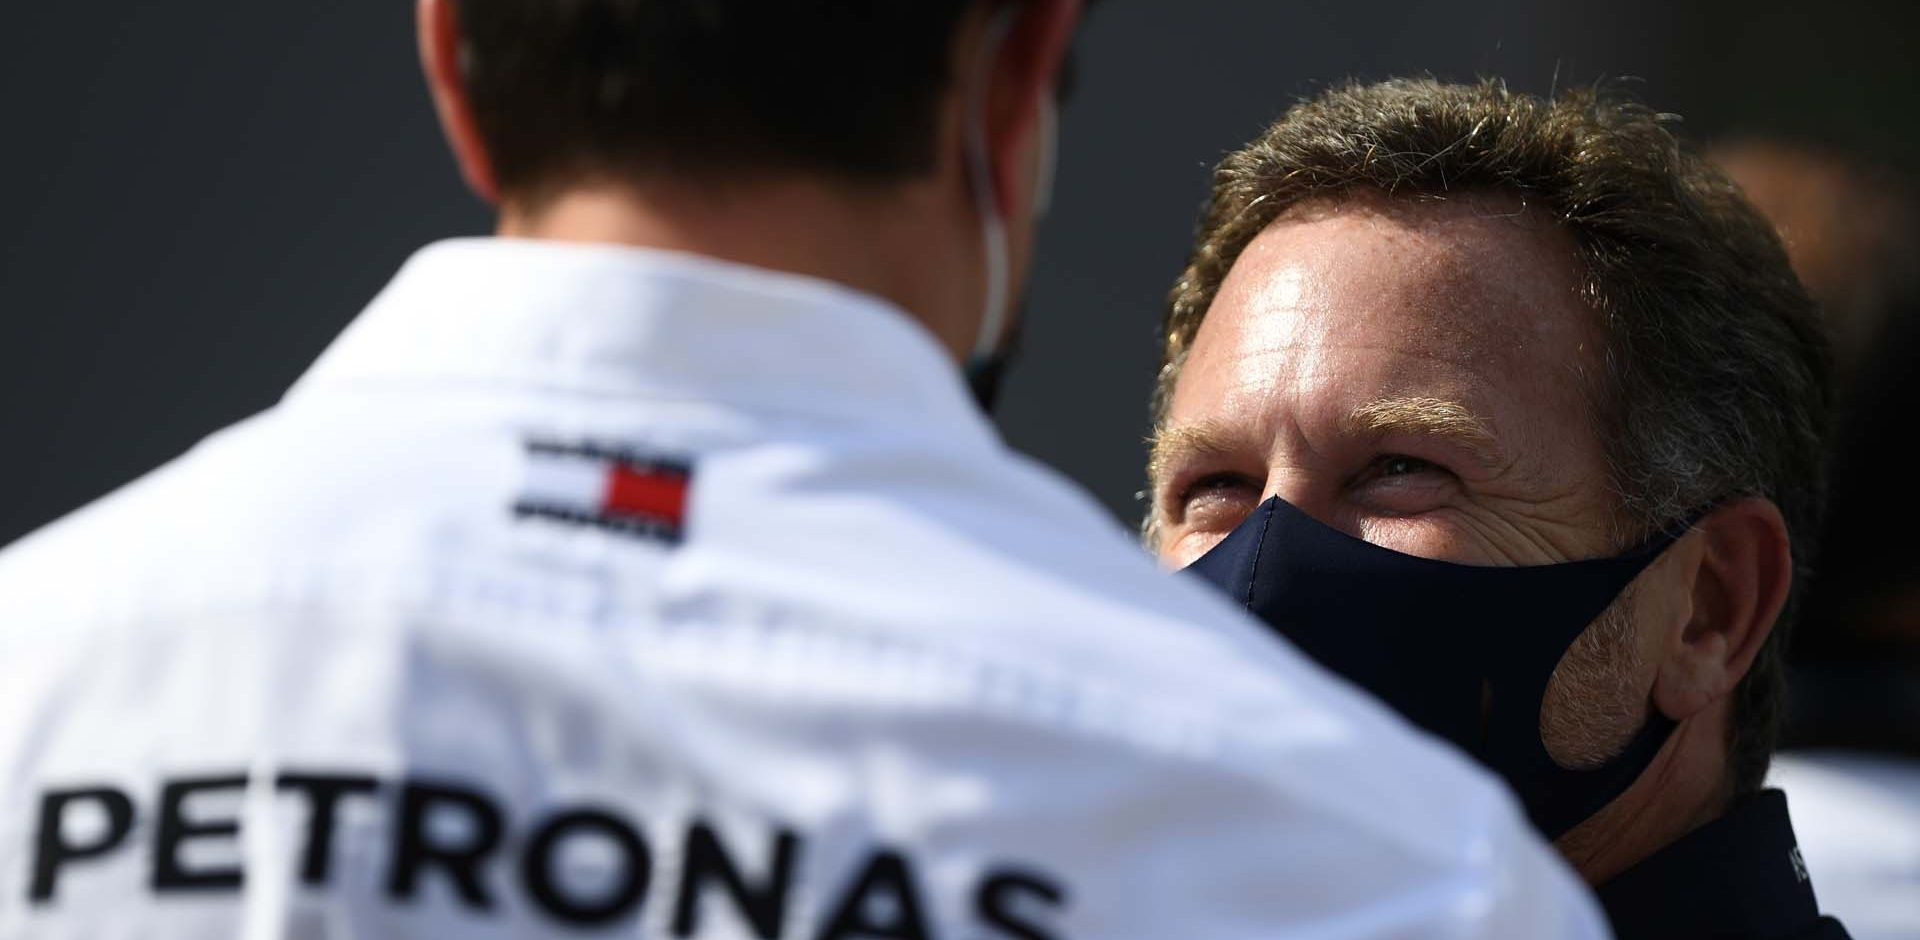 BARCELONA, SPAIN - AUGUST 16: Red Bull Racing Team Principal Christian Horner talks to Mercedes GP Executive Director Toto Wolff during the F1 Grand Prix of Spain at Circuit de Barcelona-Catalunya on August 16, 2020 in Barcelona, Spain. (Photo by Rudy Carezzevoli/Getty Images)